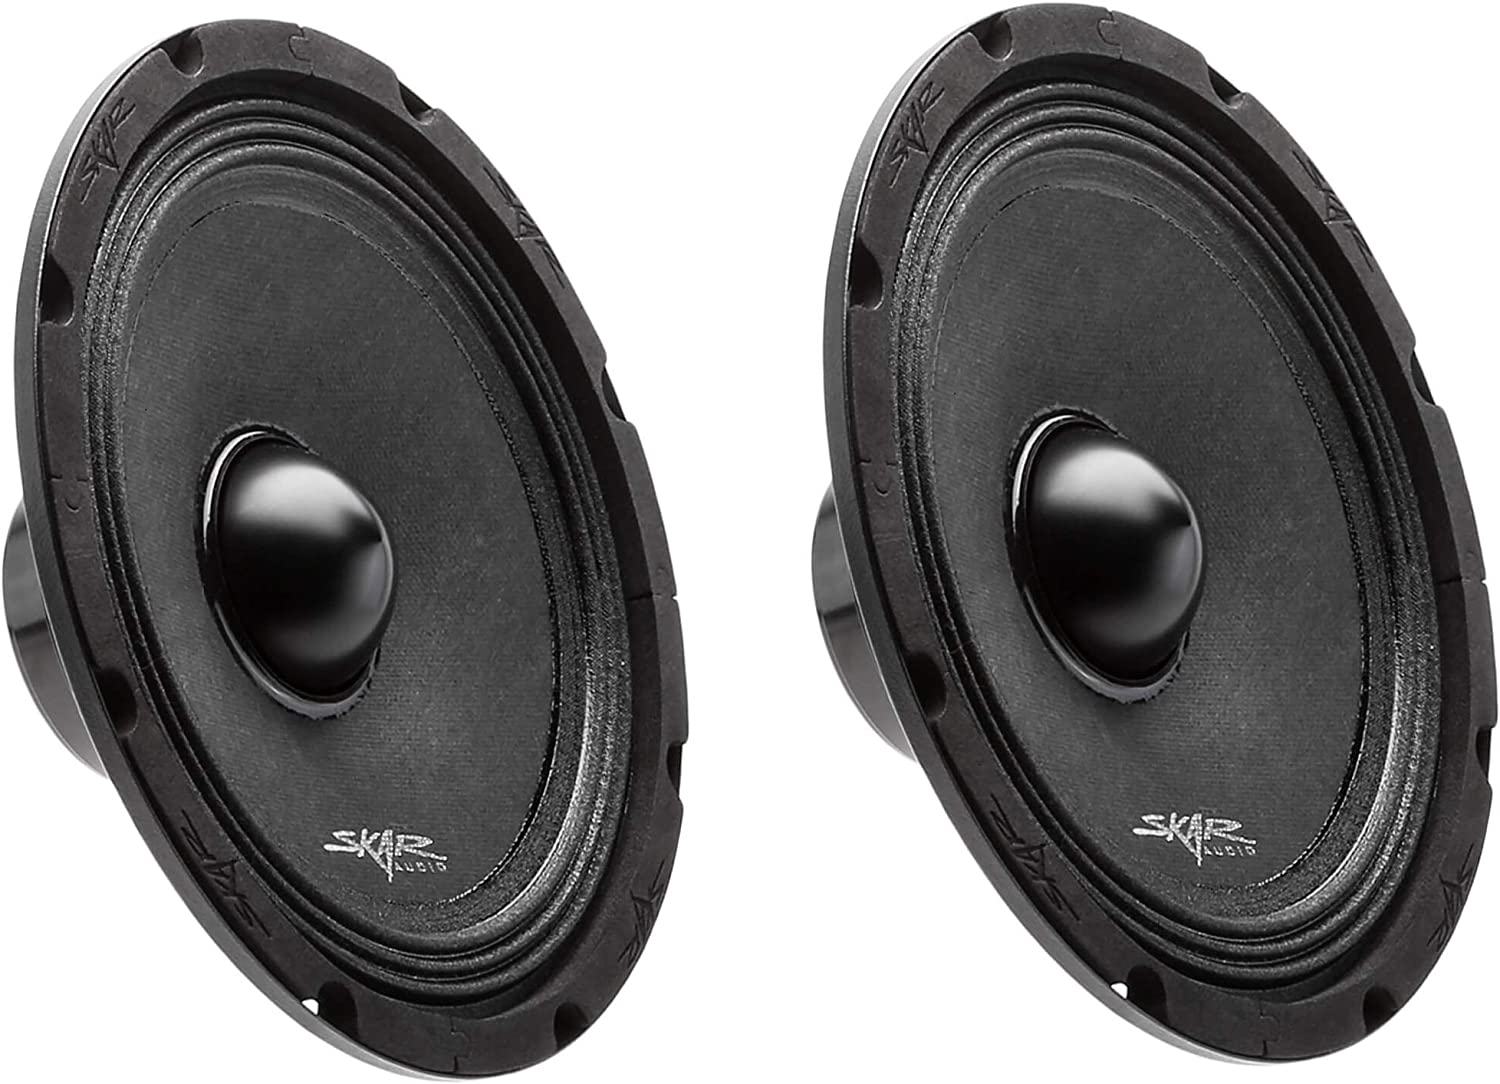 "(2) Skar Audio Npx8-4 8"" 350 Watt 4-Ohm Neodymium Pro Audio MID-Range Loudspeaker - 2 Speakers"